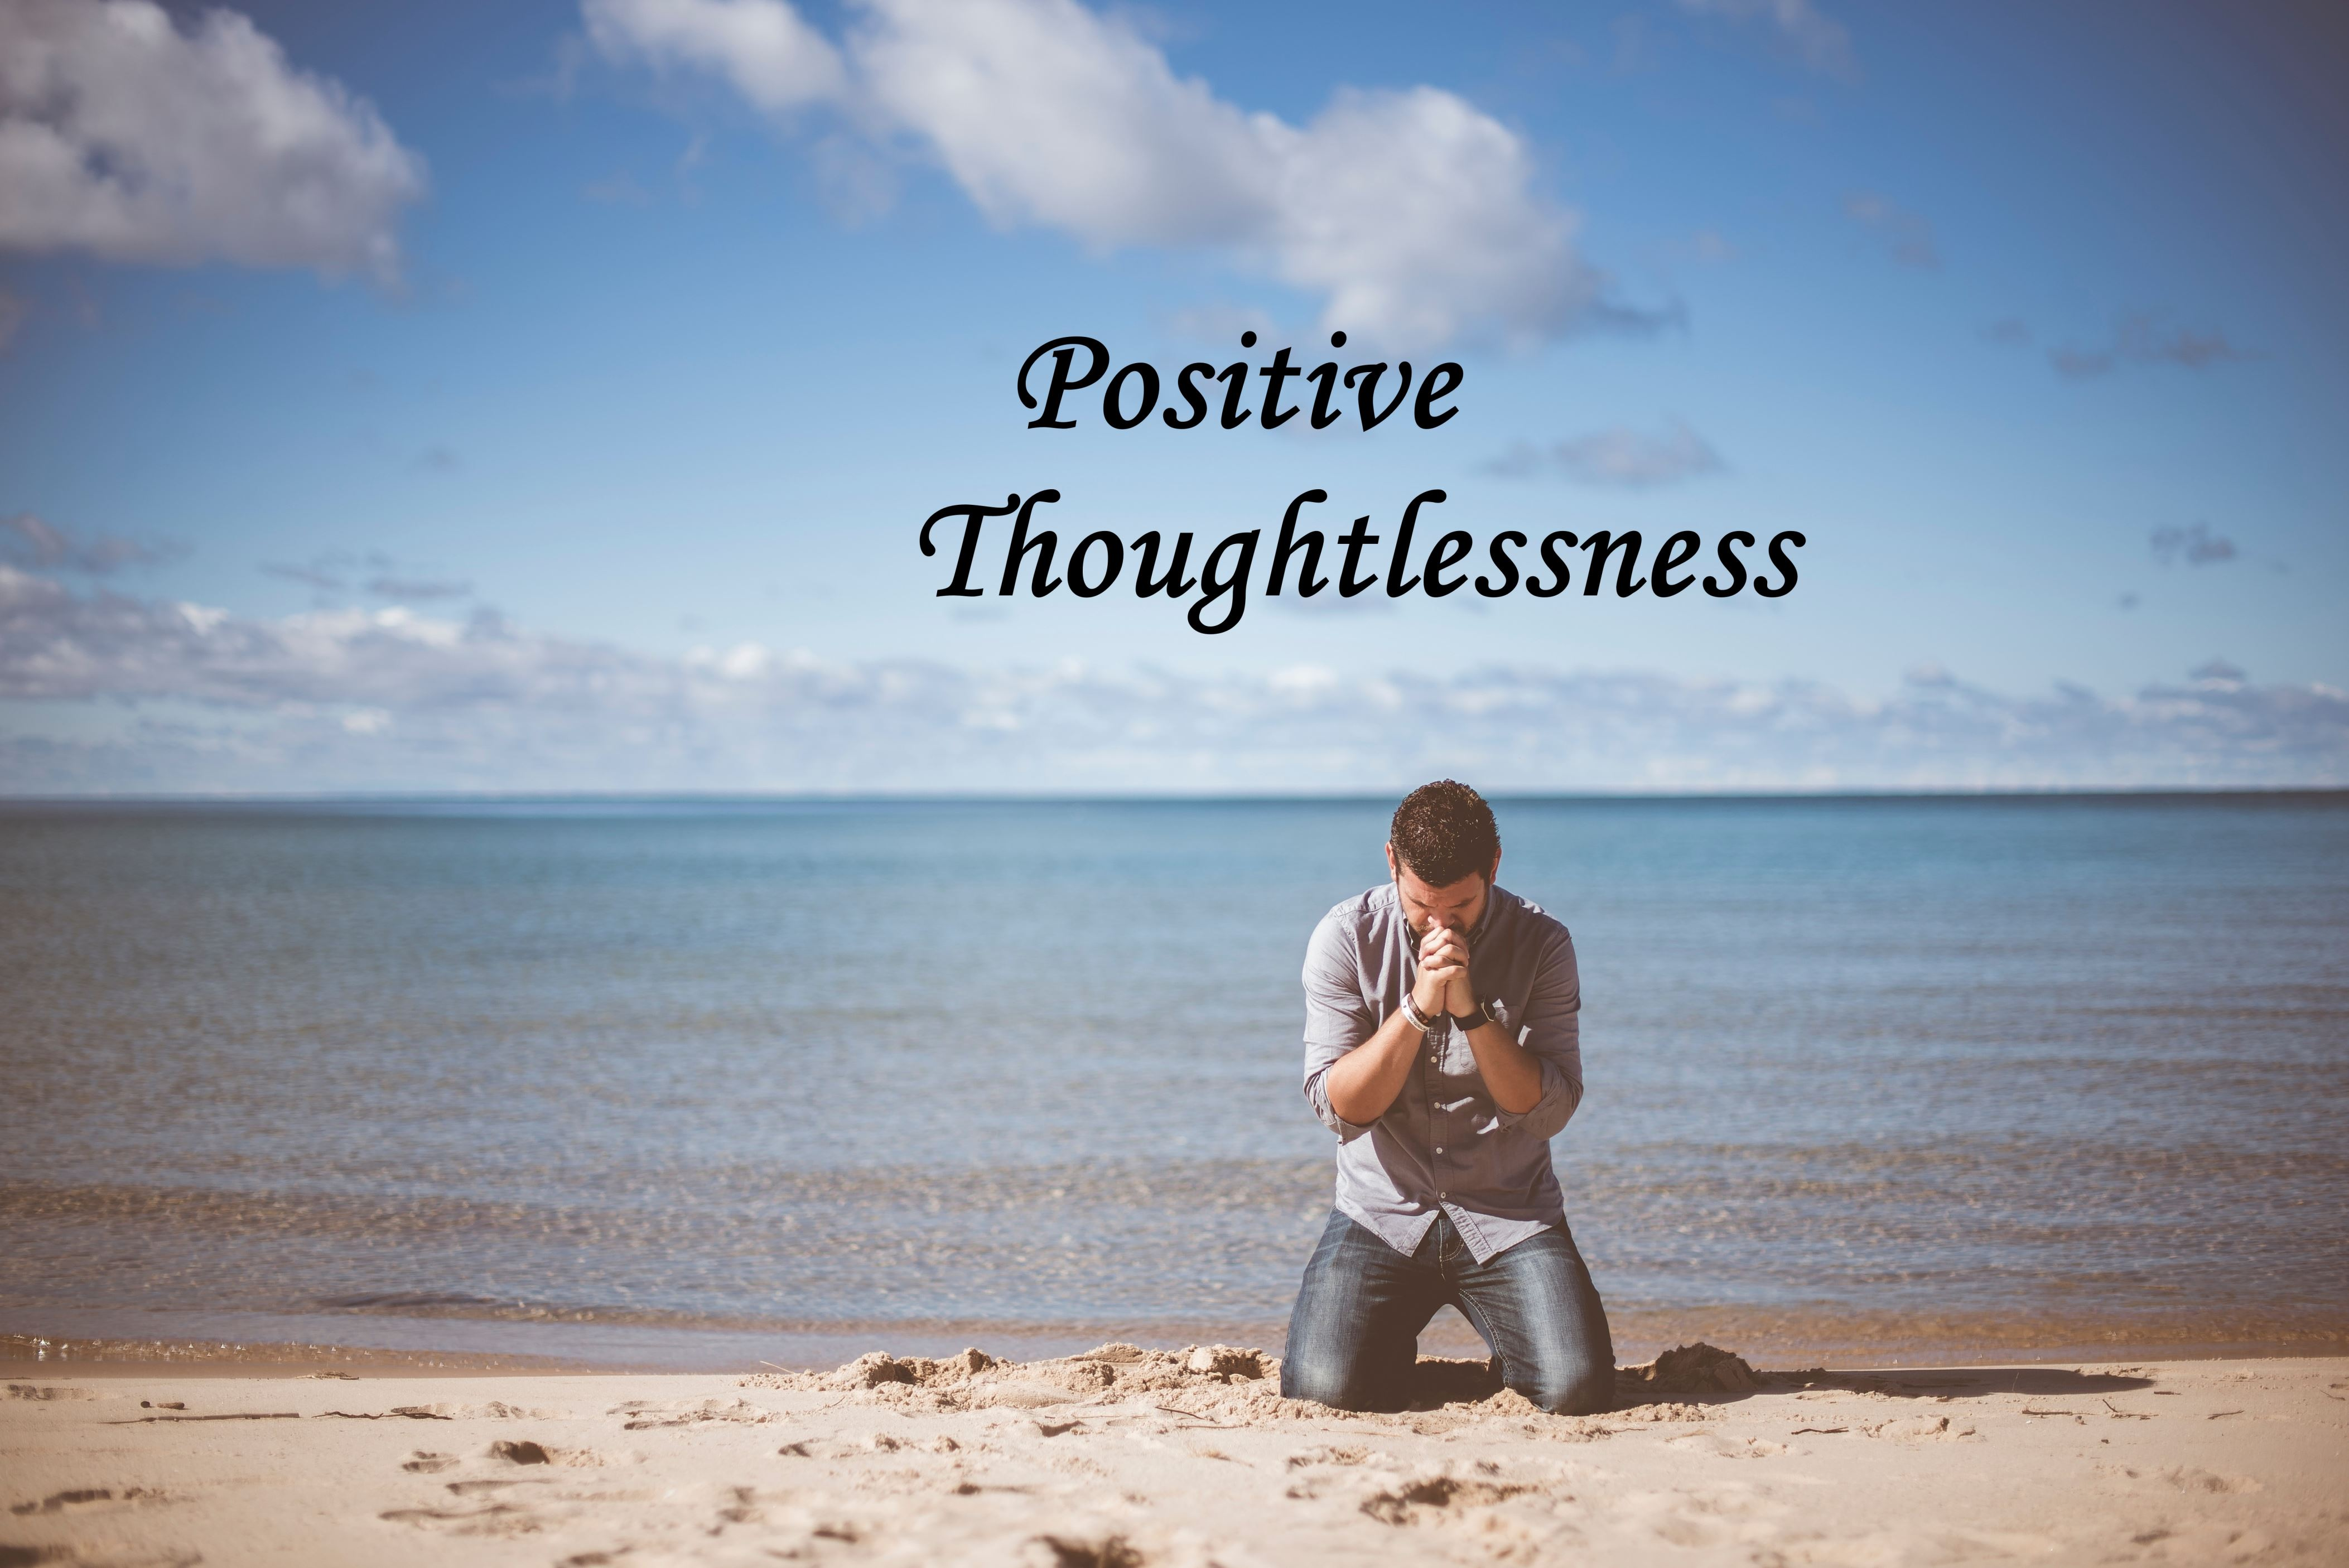 Positive Thoughtlessness